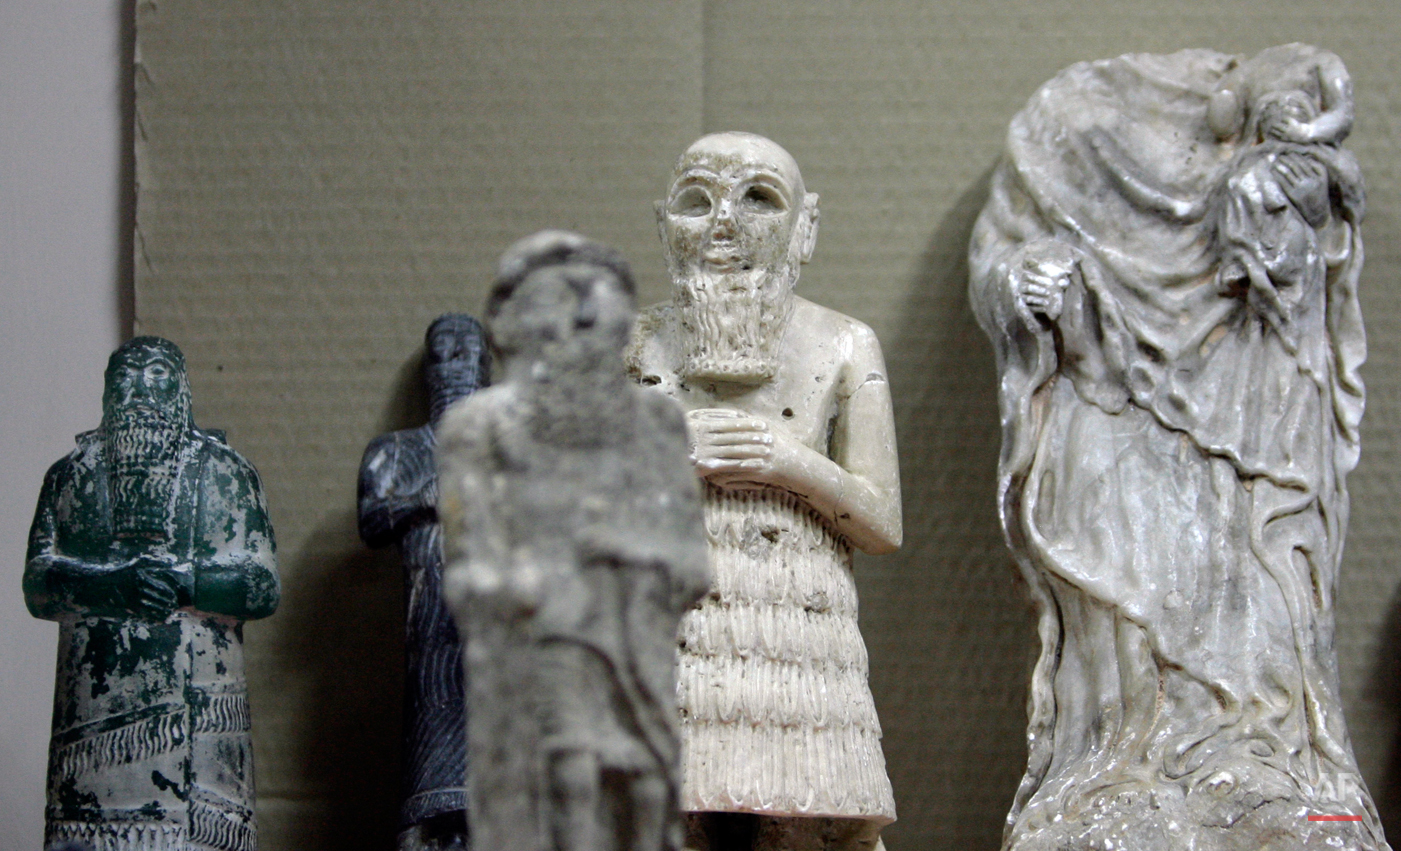 Recovered antiquities are displayed at the Iraqi National Museum in Baghdad, Iraq on Sunday, April 27, 2008. The Iraqi National Museum has welcomed home 701 artifacts that were stolen during looting after Saddam Hussein's ouster in 2003. Syrian authorities have turned over items ranging from golden necklaces to clay pots that were seized by traffickers in the neighboring country. (AP Photo/Khalid Mohammed)